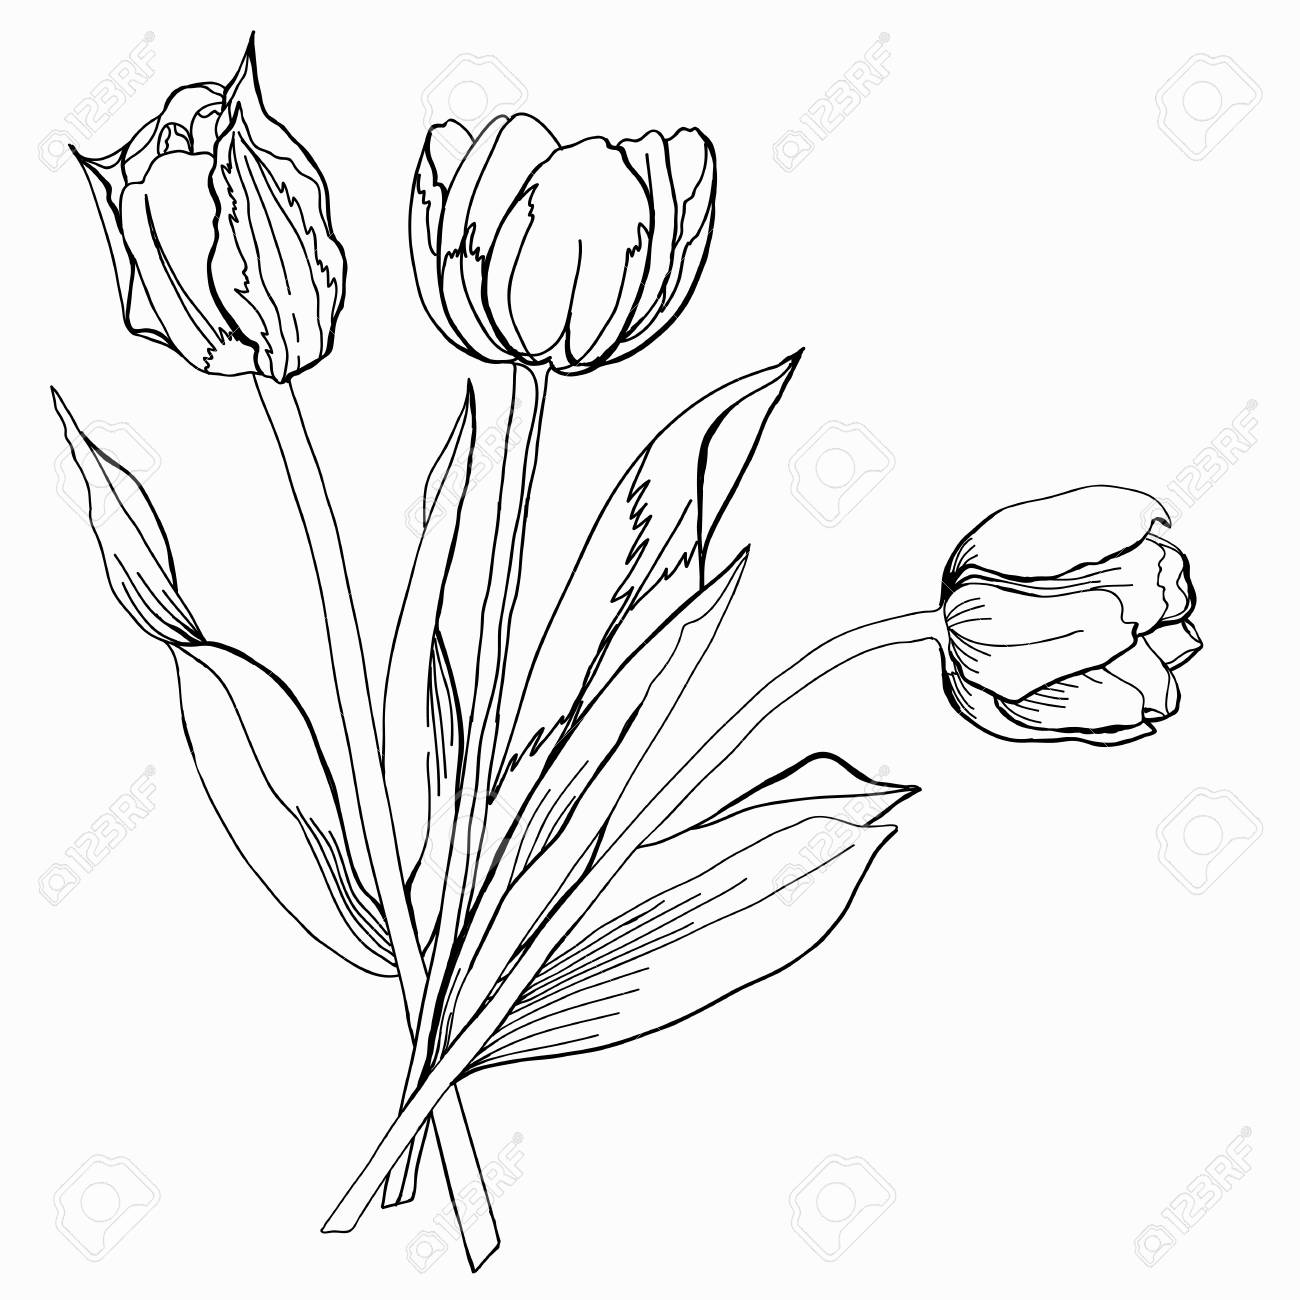 tulip sketch black and white royalty free cliparts vectors and